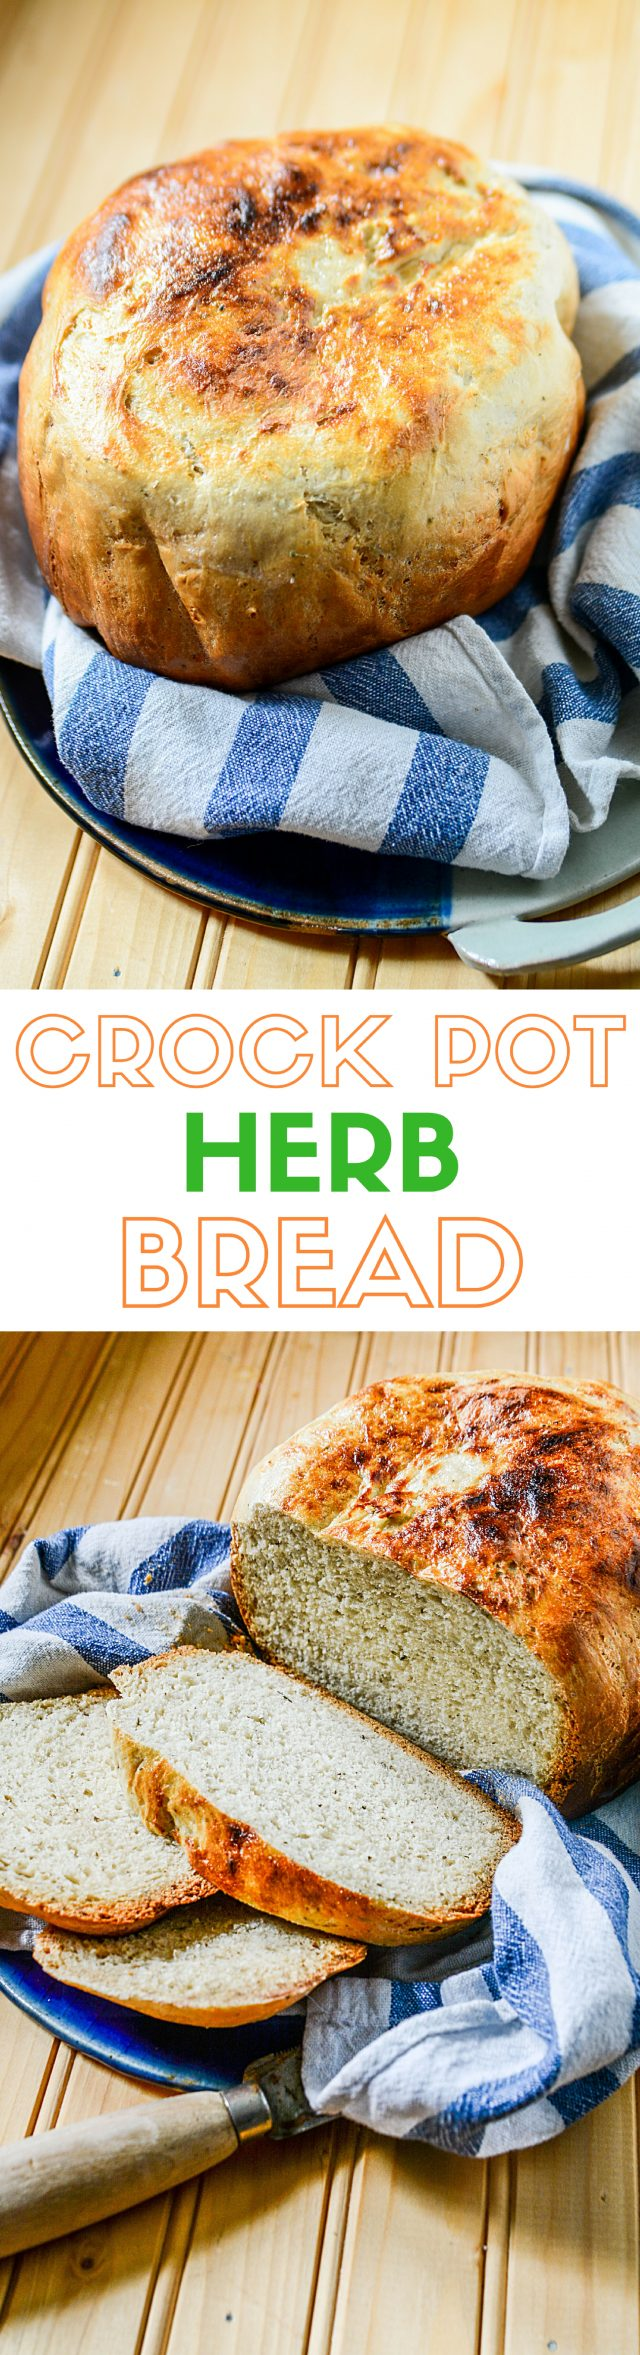 Easy herbed bread recipe made in a Crock-Pot Slow Cooker, which is perfect for fall!